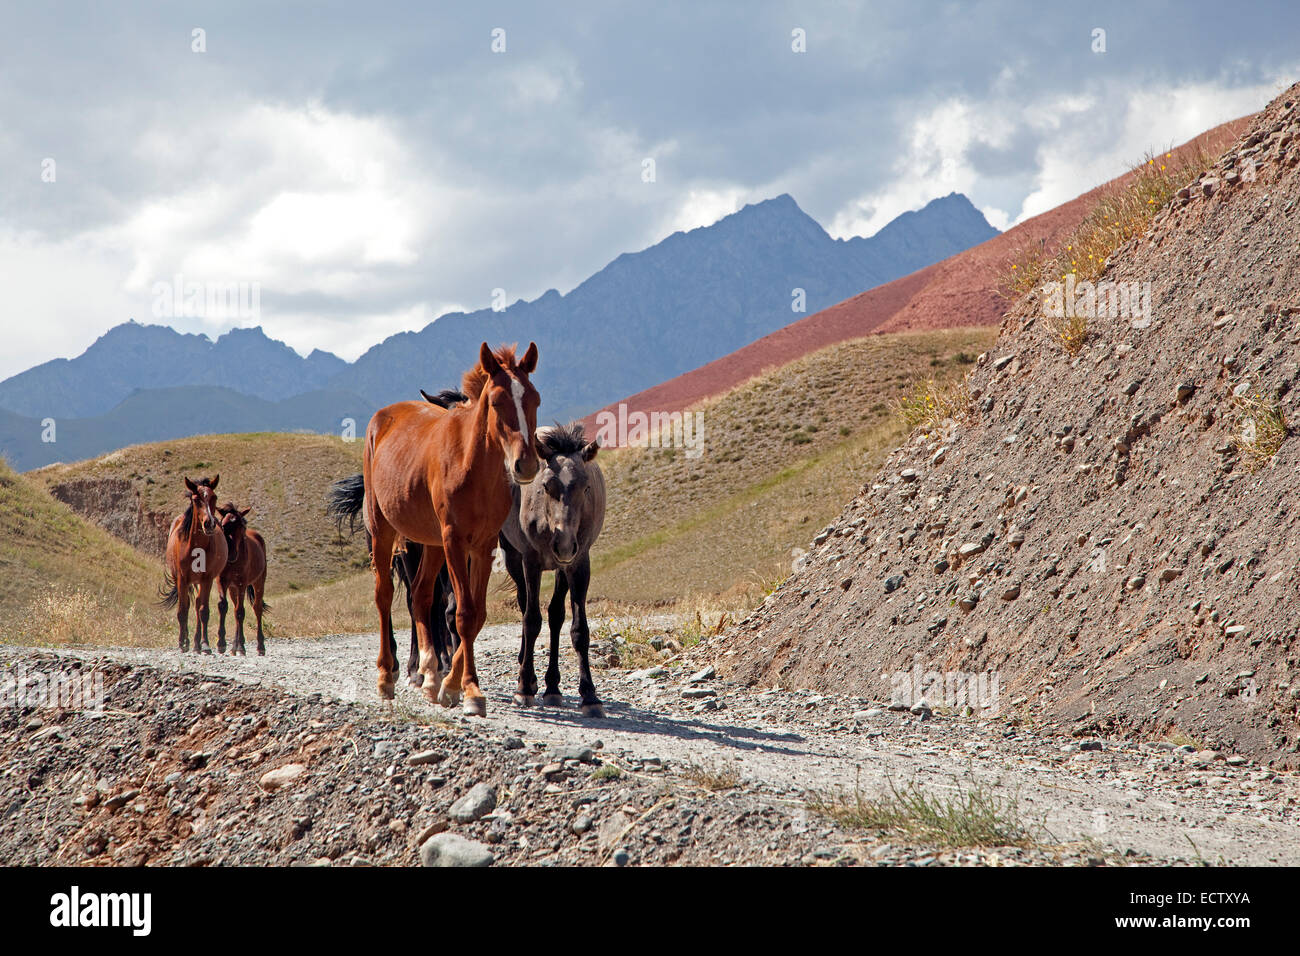 Kyrgyz horses following path in the mountains of the Osh Province, Kyrgyzstan - Stock Image